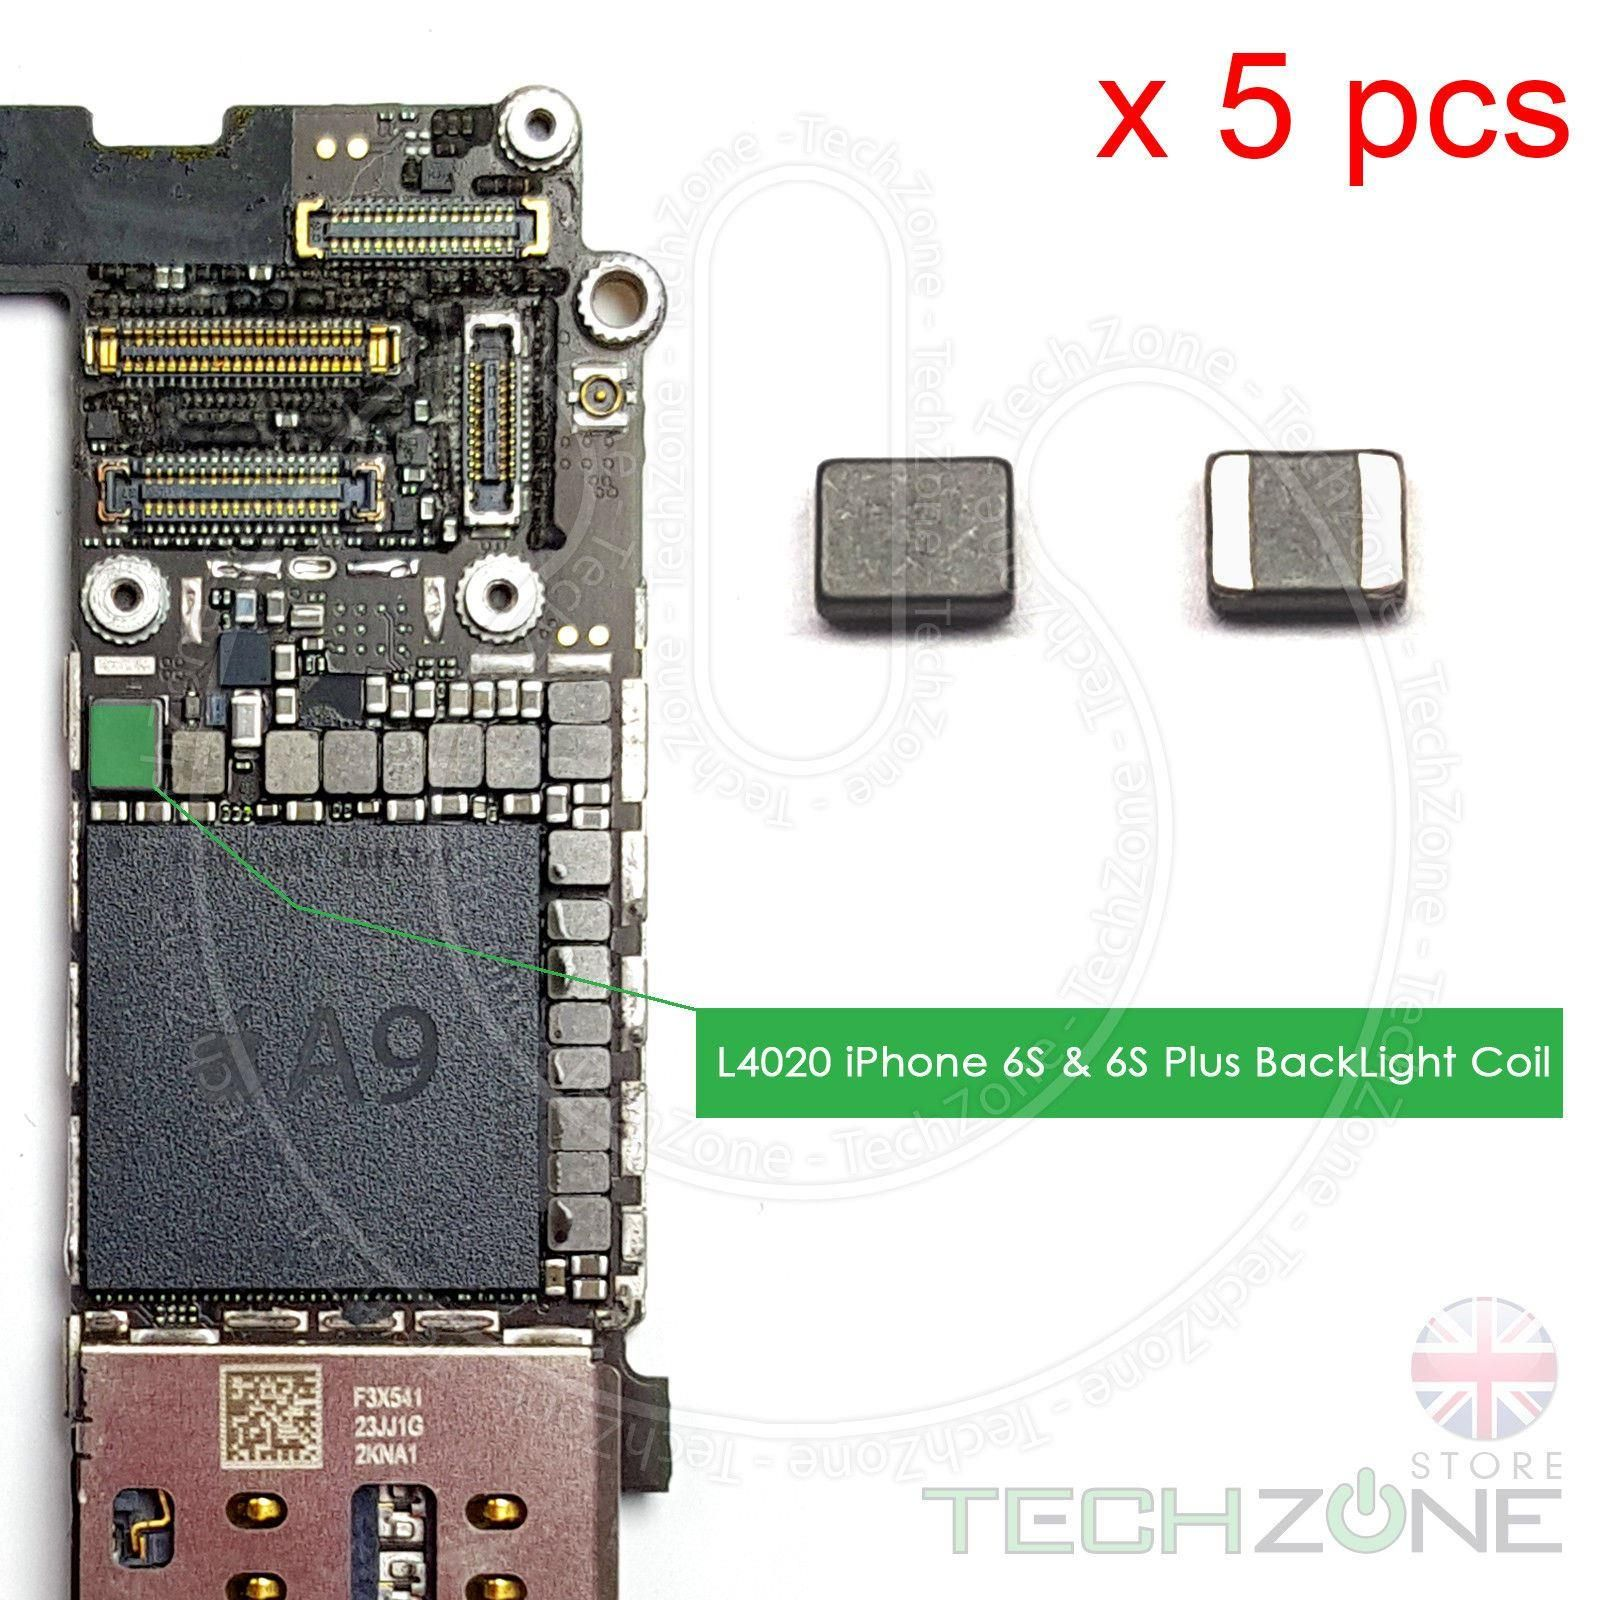 promo code 4ca56 16d70 5 X LCD Back Light Repair Backlight Coil L4020 / L4050 for Apple iPhone 6S  4.7'' & 6S Plus 5.5''